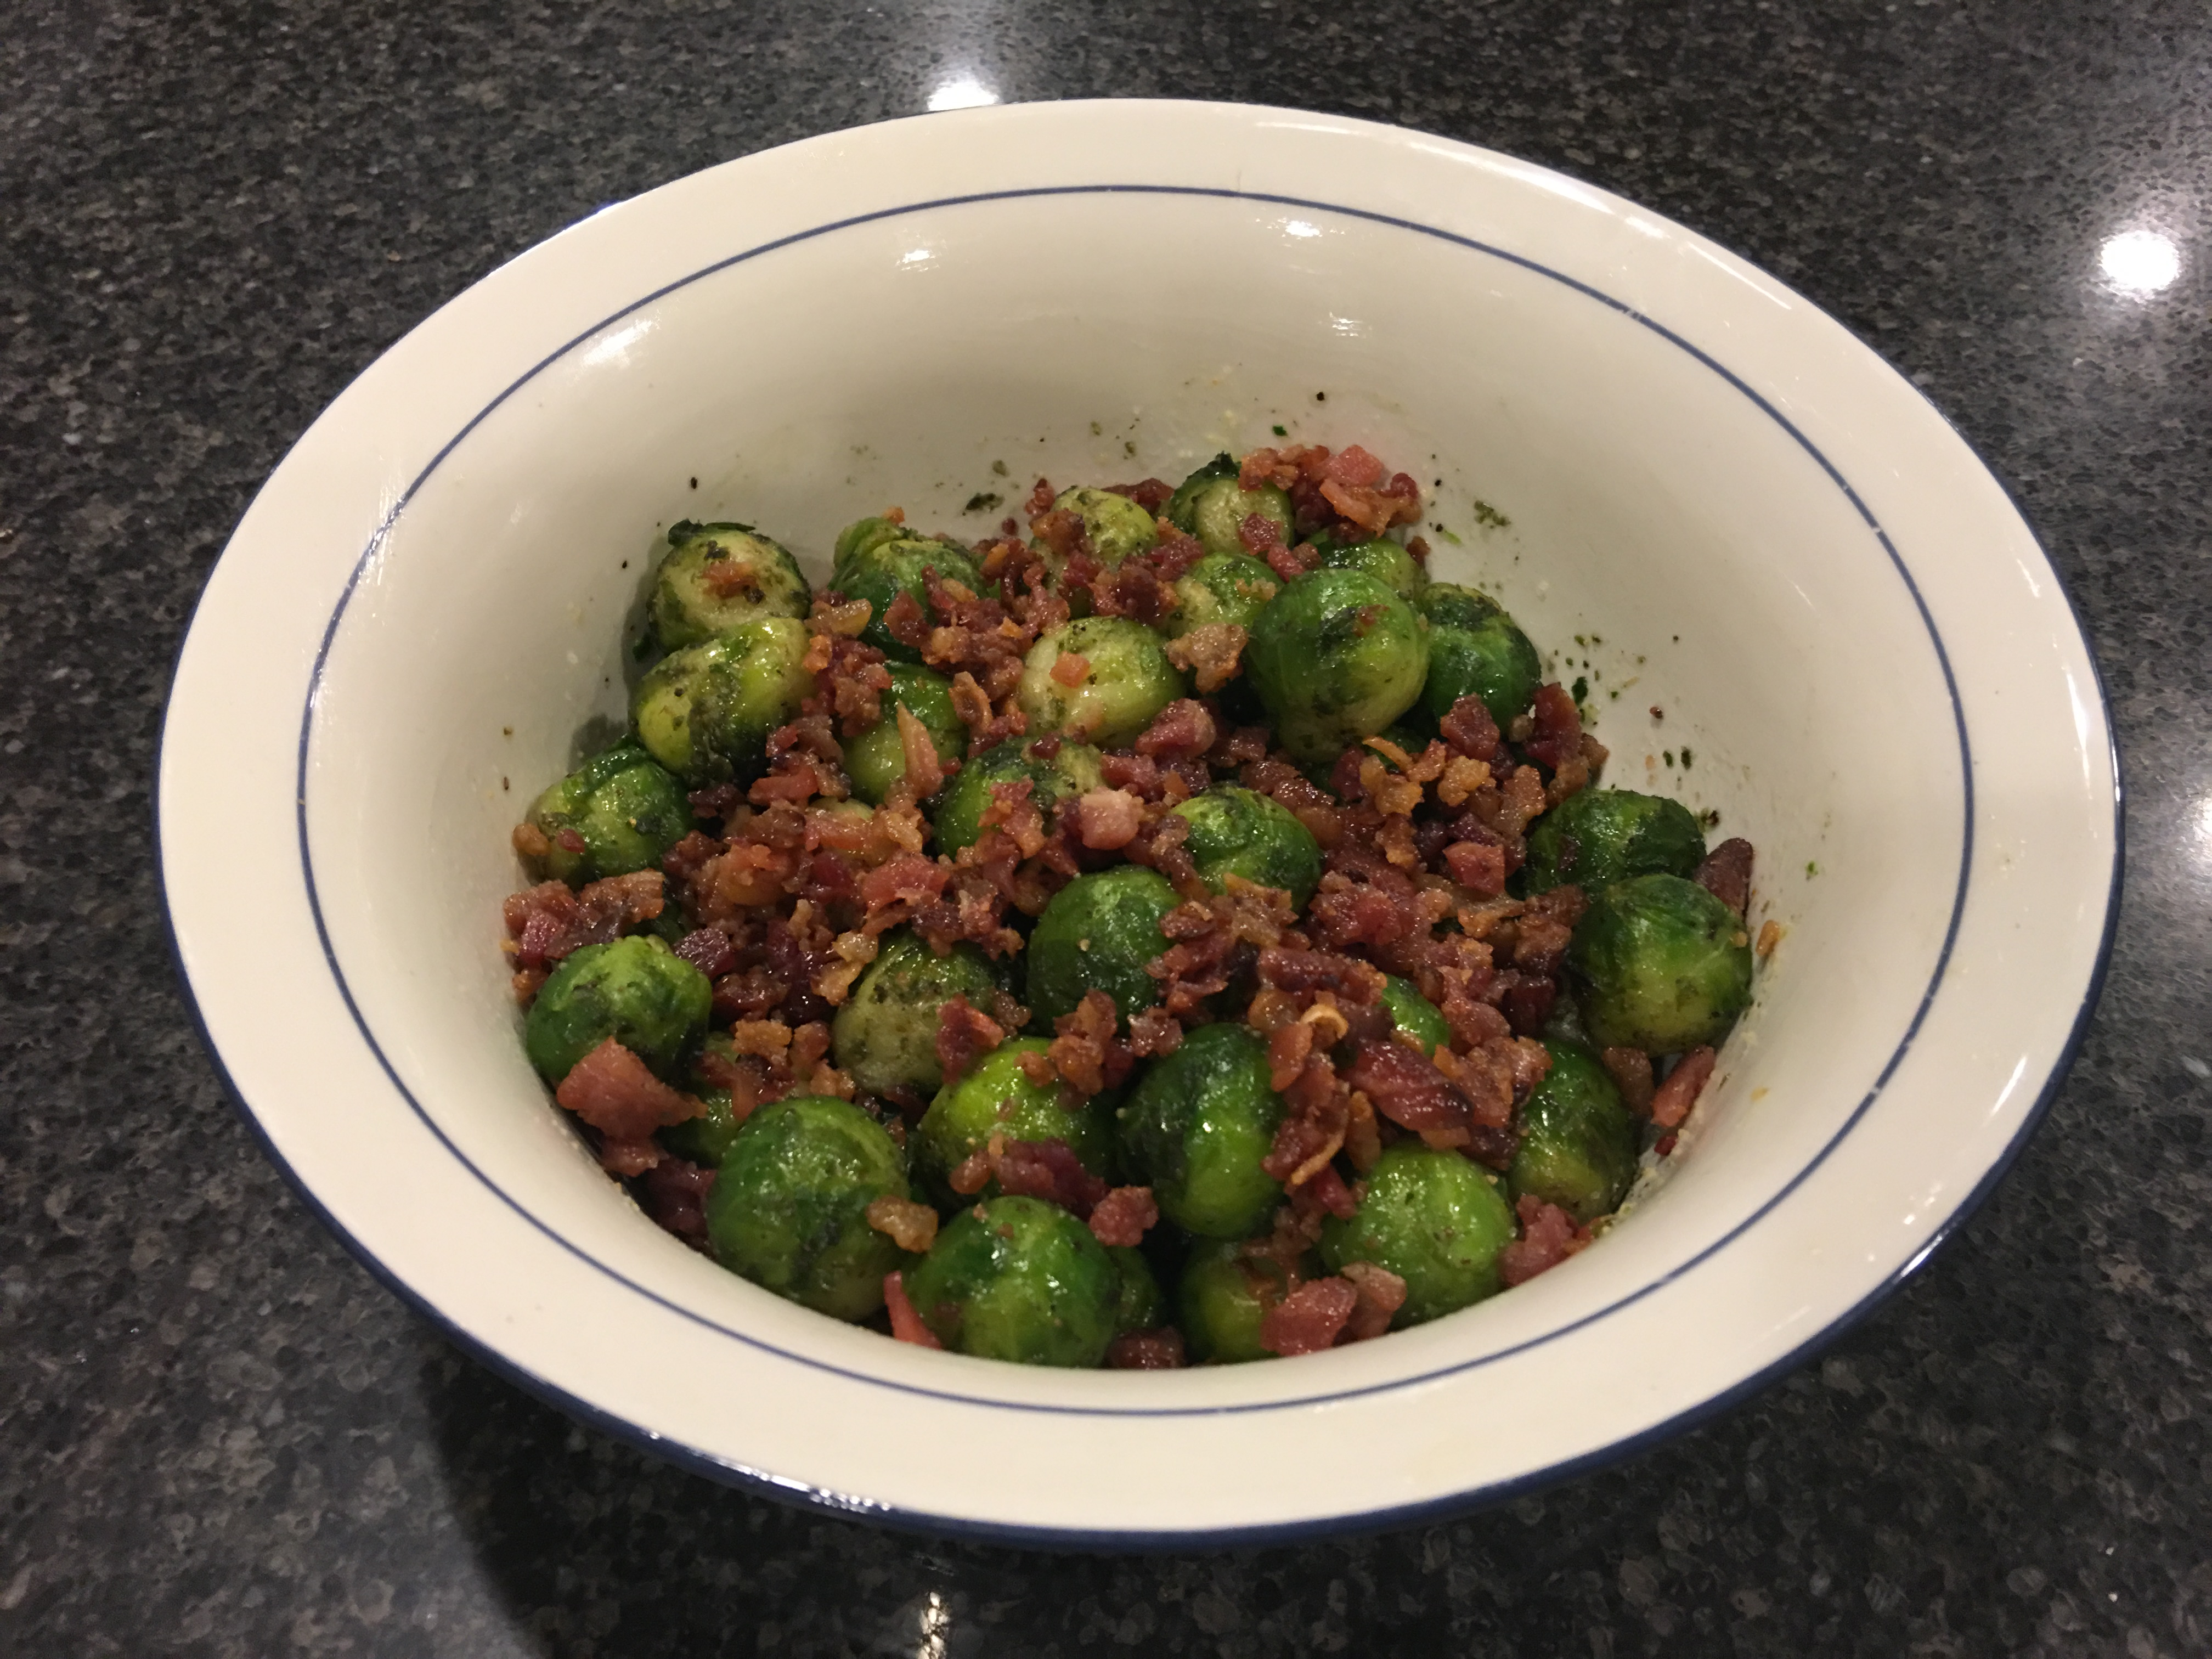 Grilled Brussels Sprouts with Bacon GergMeister